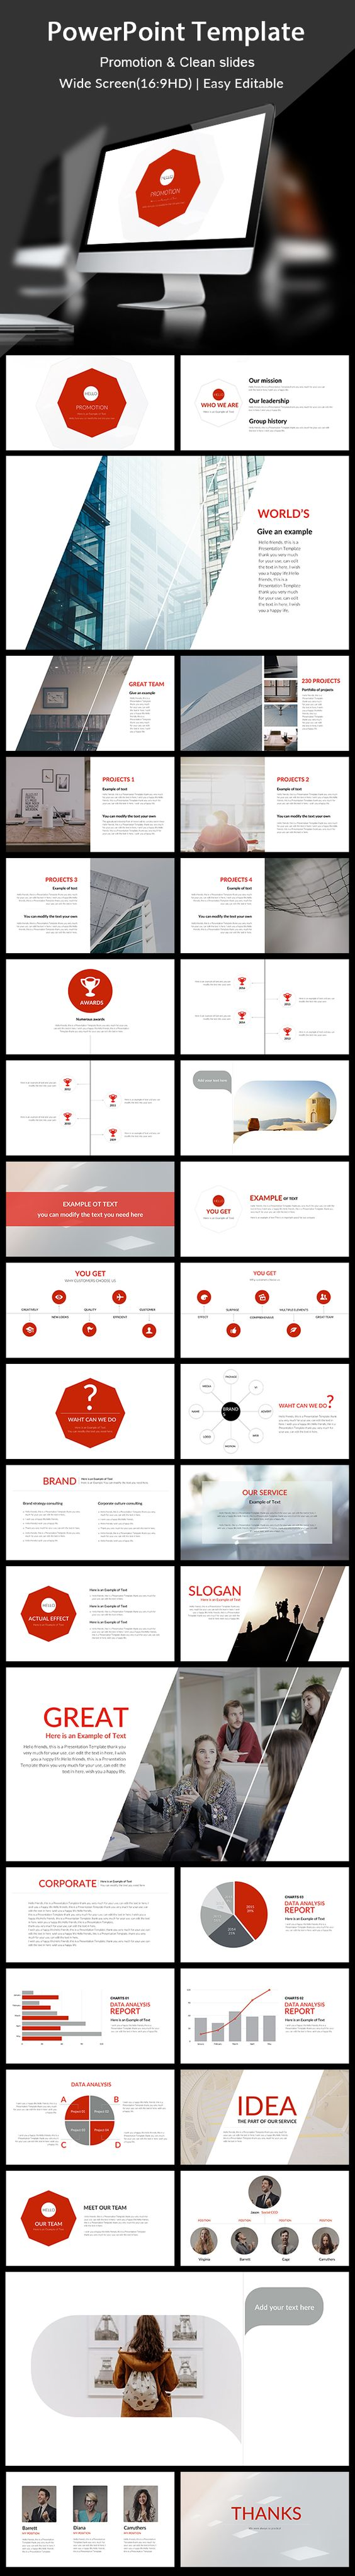 Promotion - PowerPoint Presentation Template. Download here: https://graphicriver.net/item/promotion-powerpoint-presentation-template/17328443?ref=ksioks